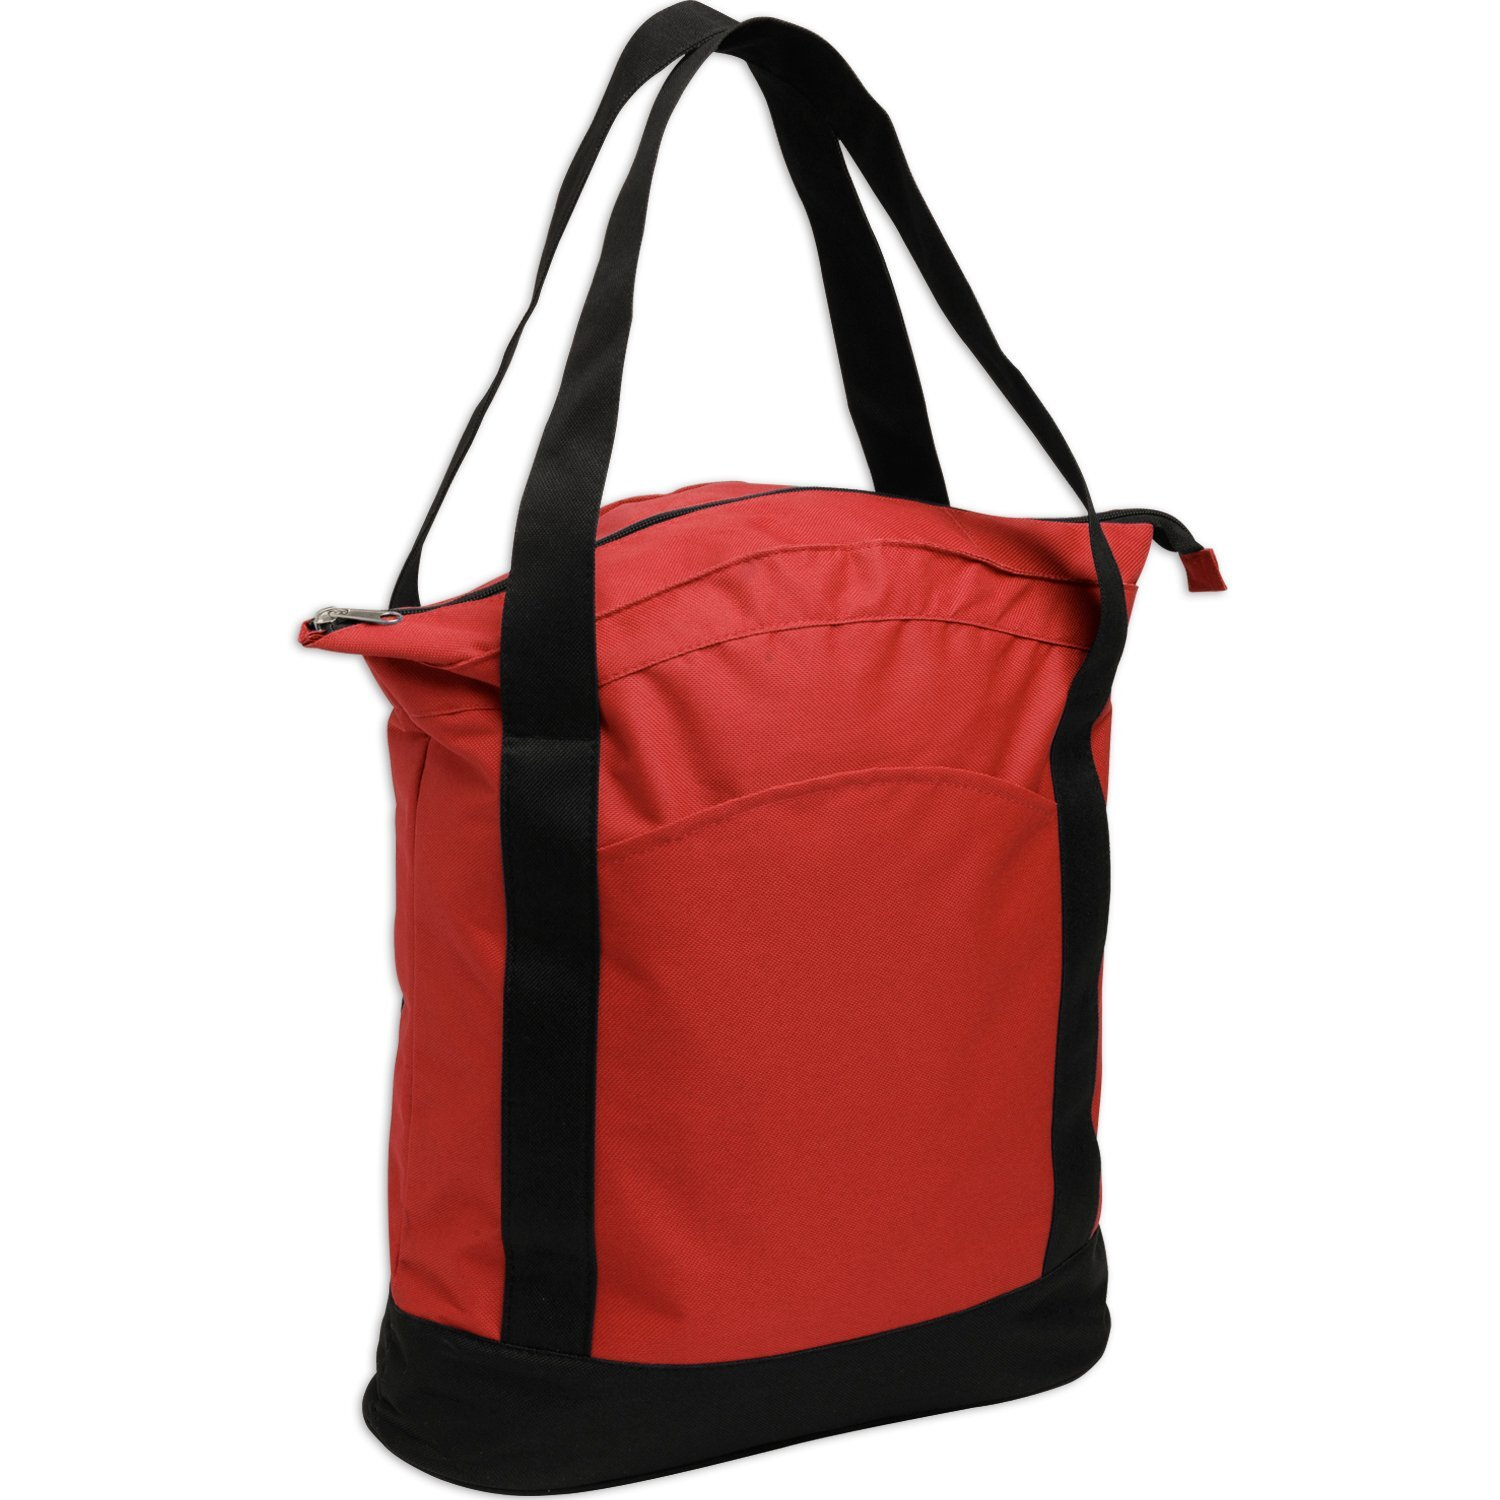 Adventure Nylon Tote Bag